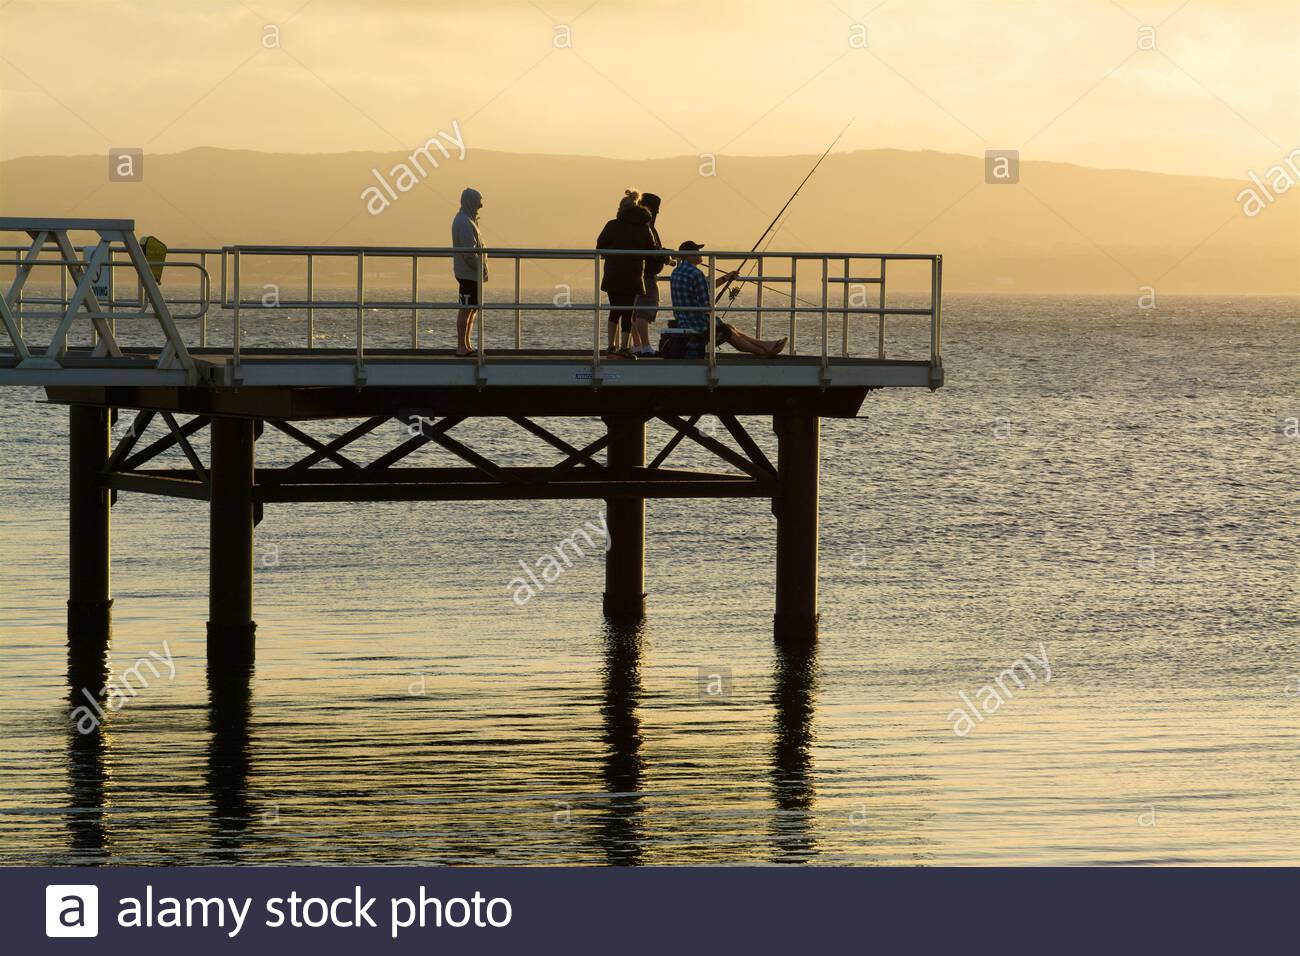 people-fishing-near-sunset-from-a-jetty-extending-from-the-waterfront-marina-in-princess-royal-harbour-albany-western-australia-2E19JXJ.jpg